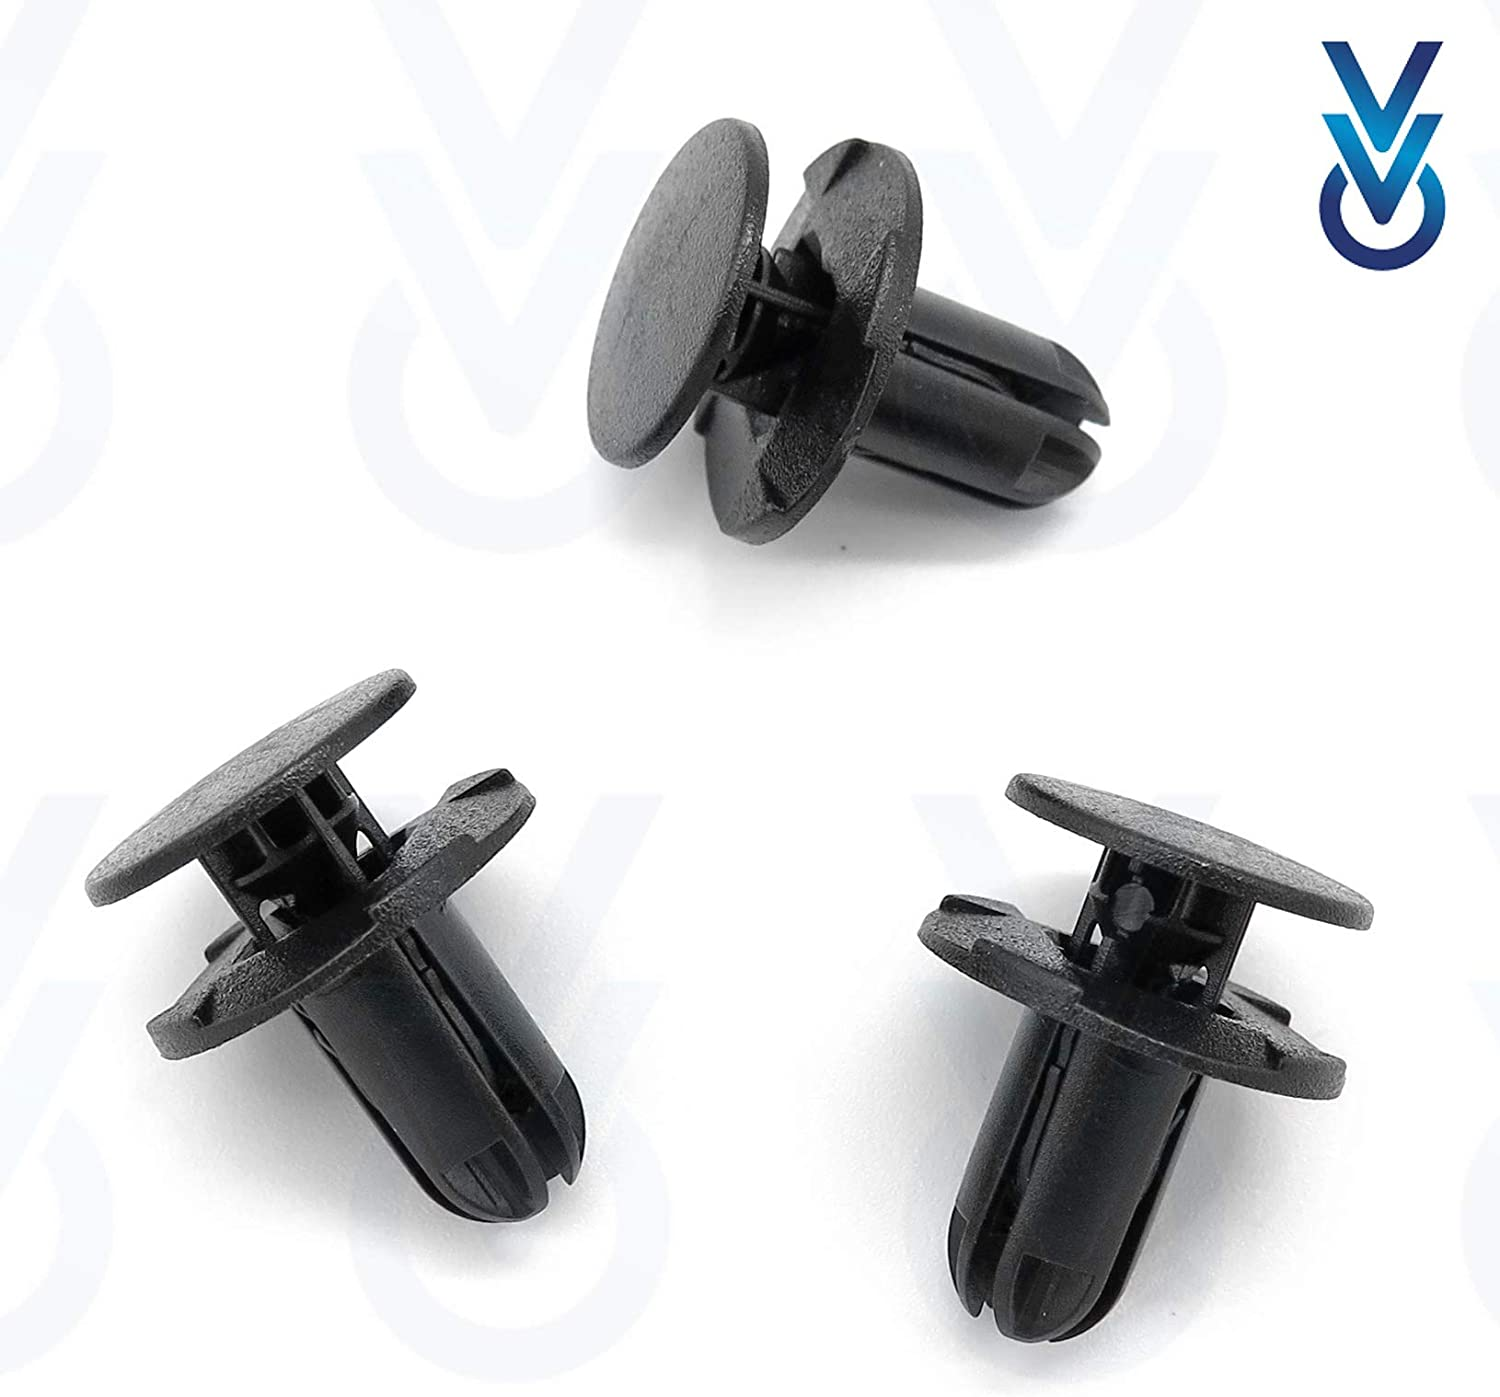 Pack of 10 VVO Fasteners Front Bumper /& Trim Fastener Clips Black